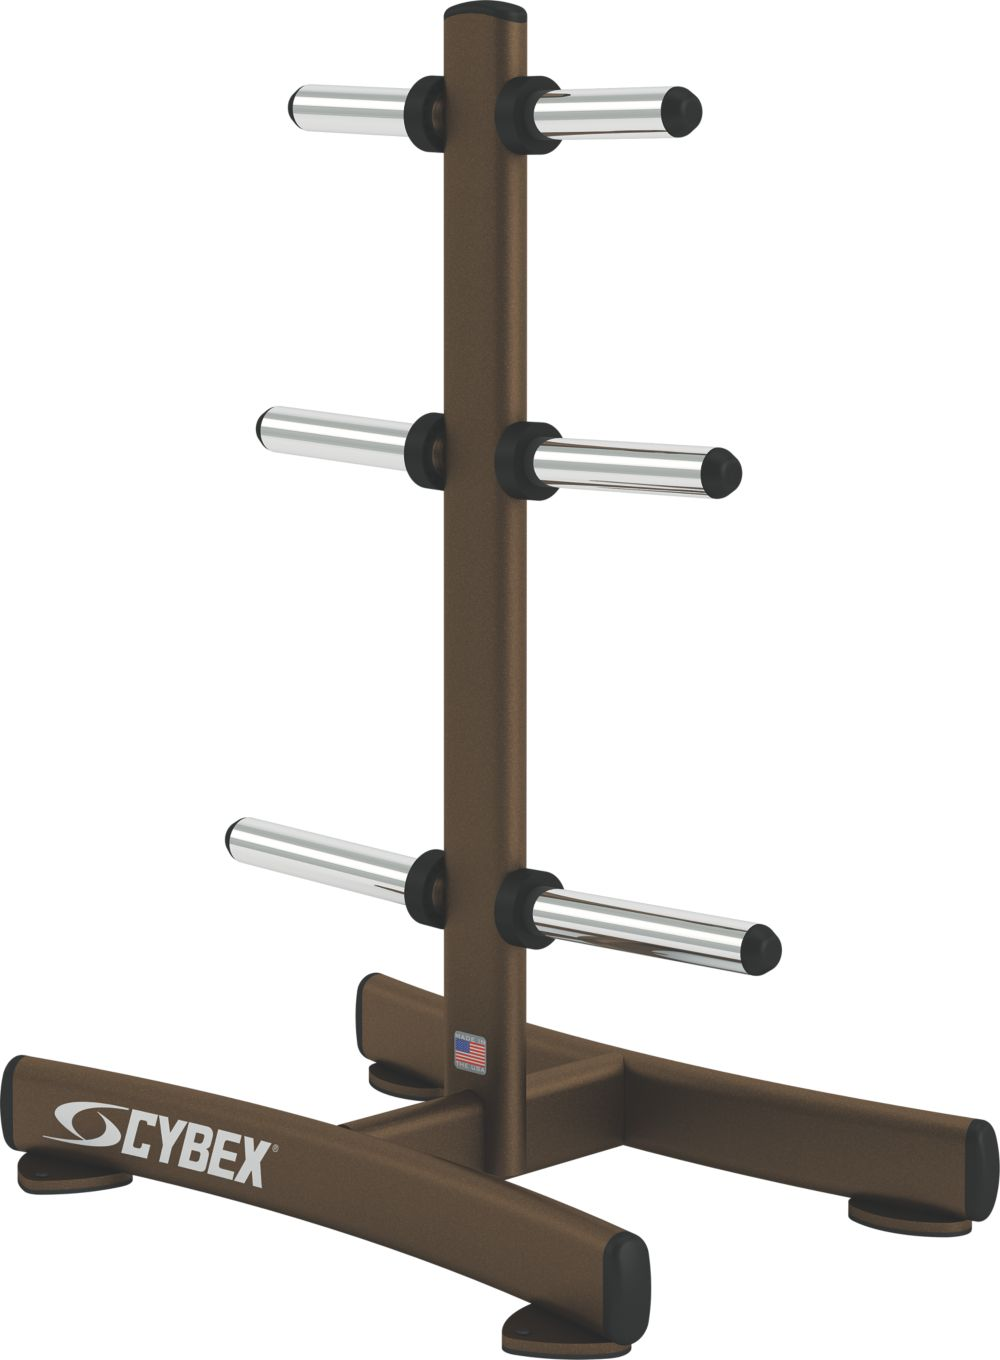 Weight Tree | Cybex: http://www.cybexintl.com/free-weights-weight-tree-product-16140.aspx